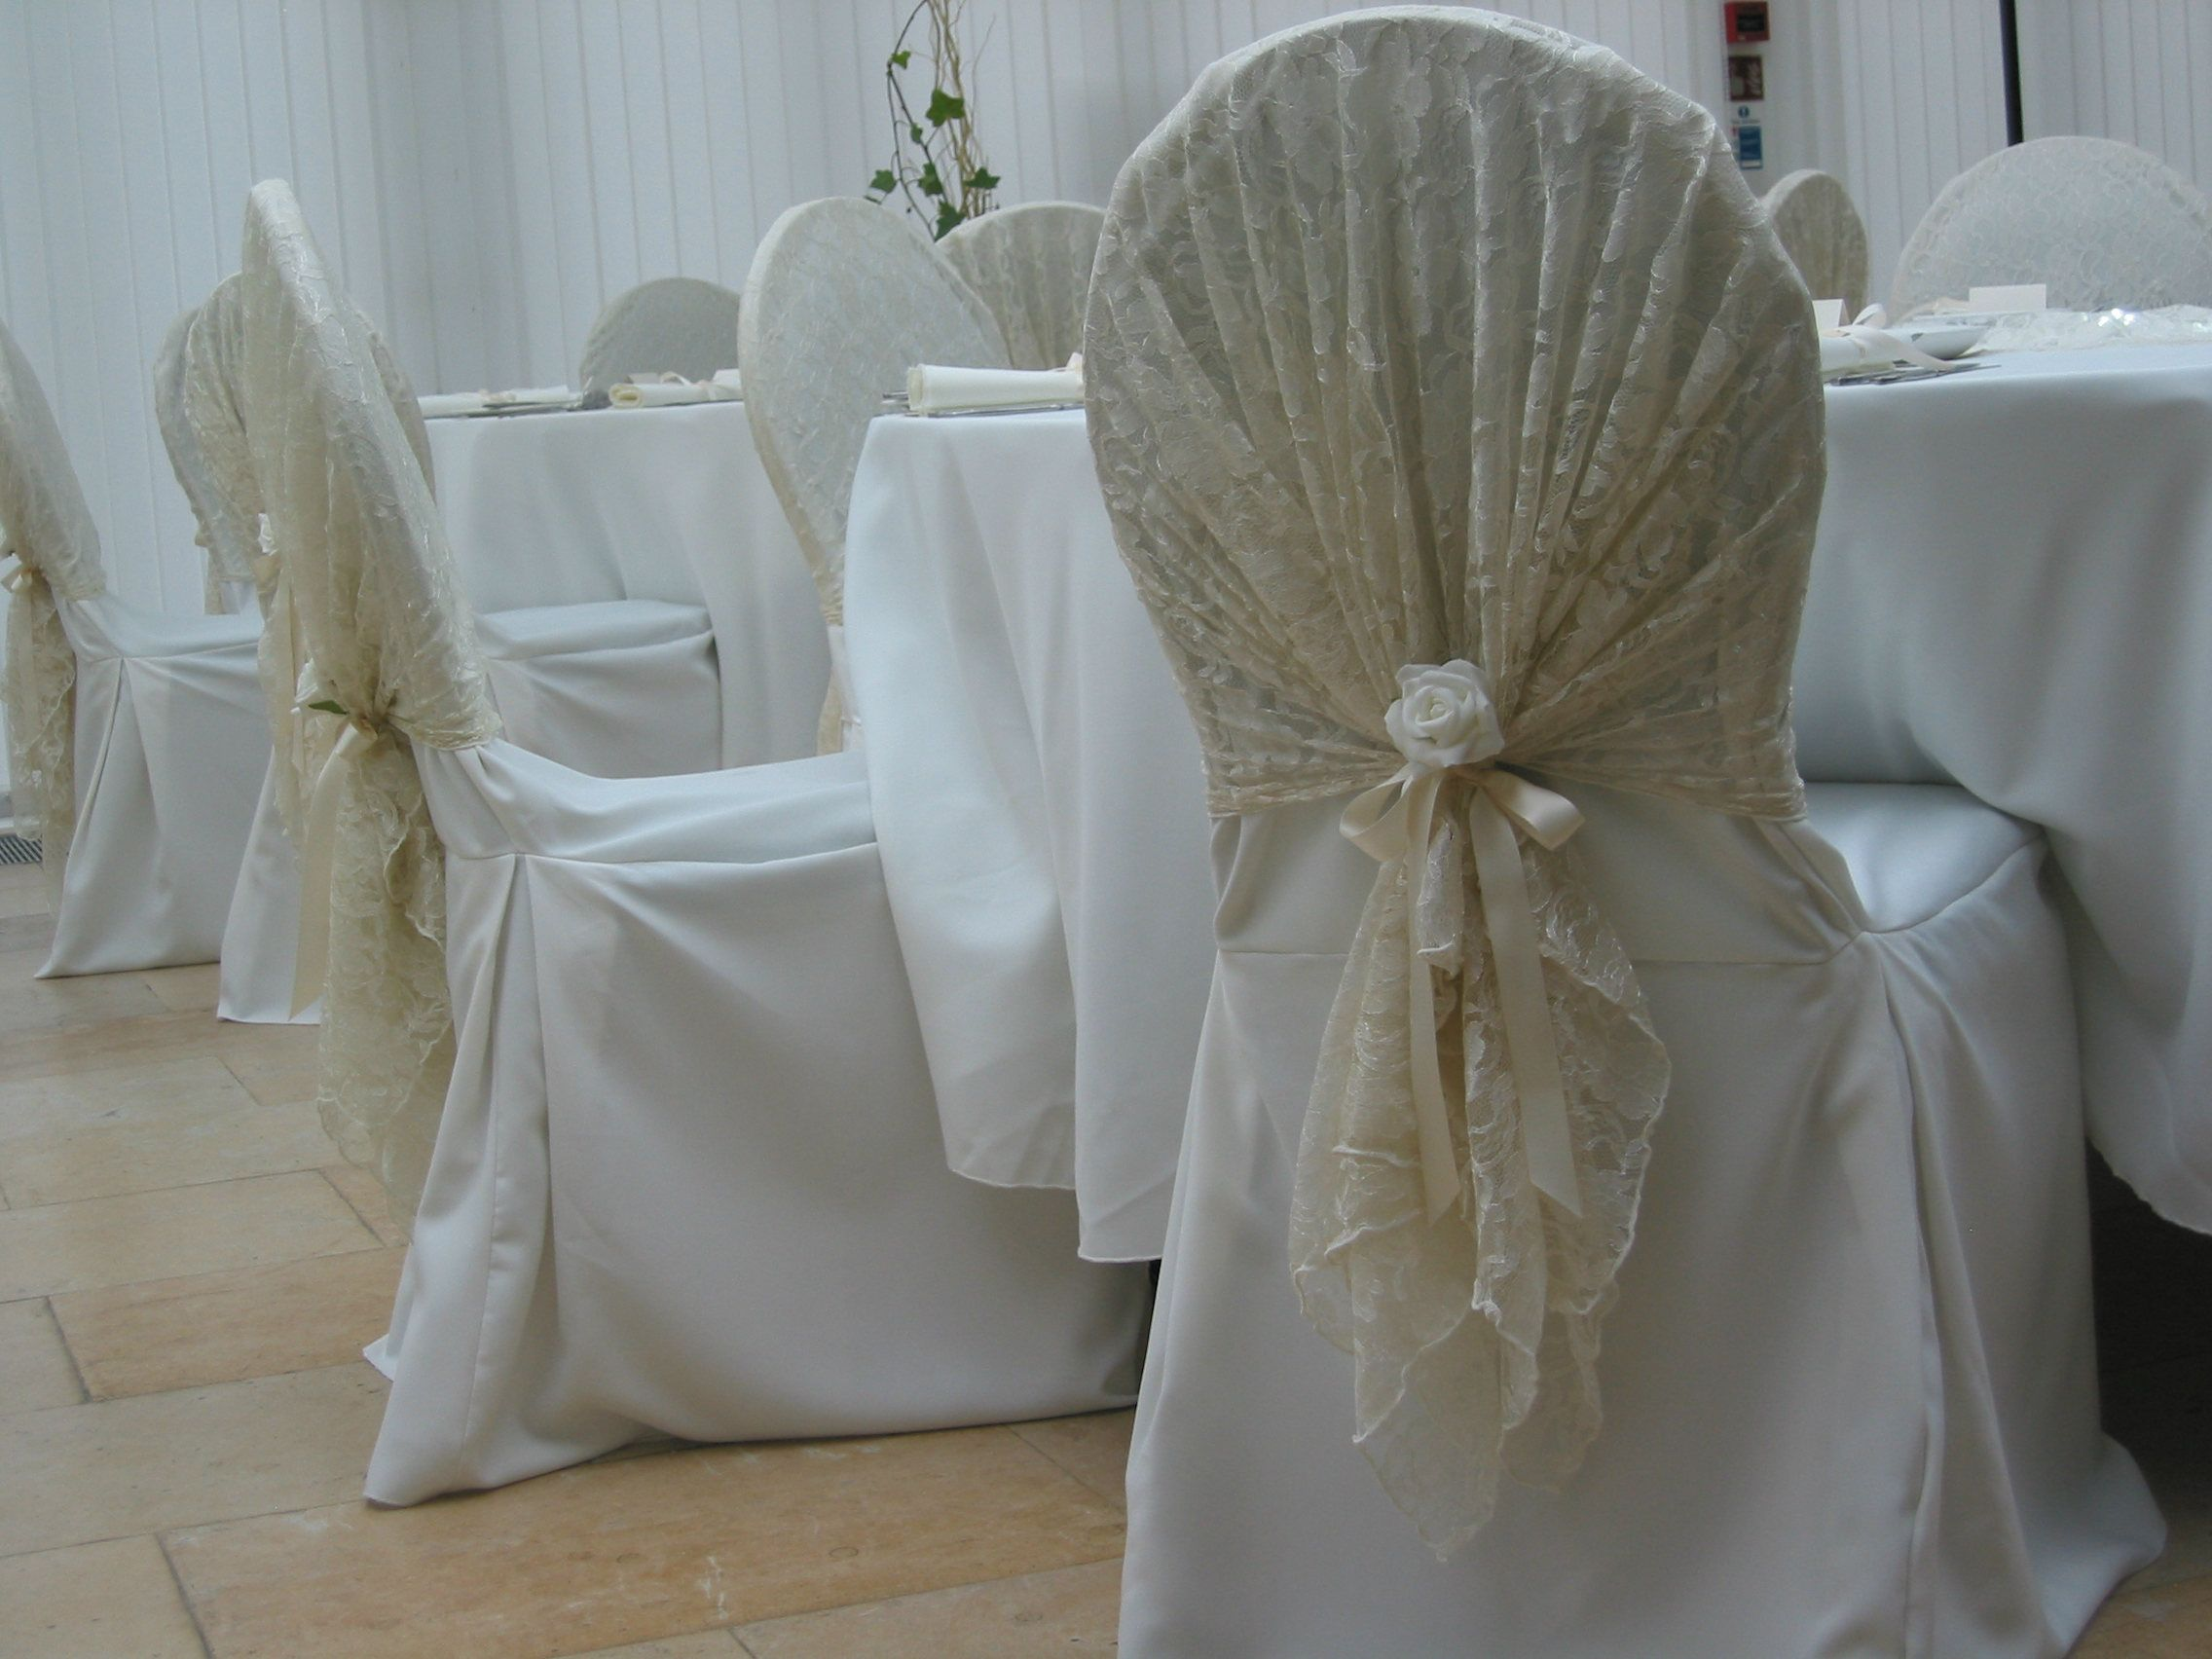 Hire Of Chair Covers La Z Boy Lift Remote Vintage Style Lace Hoods Wedding Http Weddingmarket